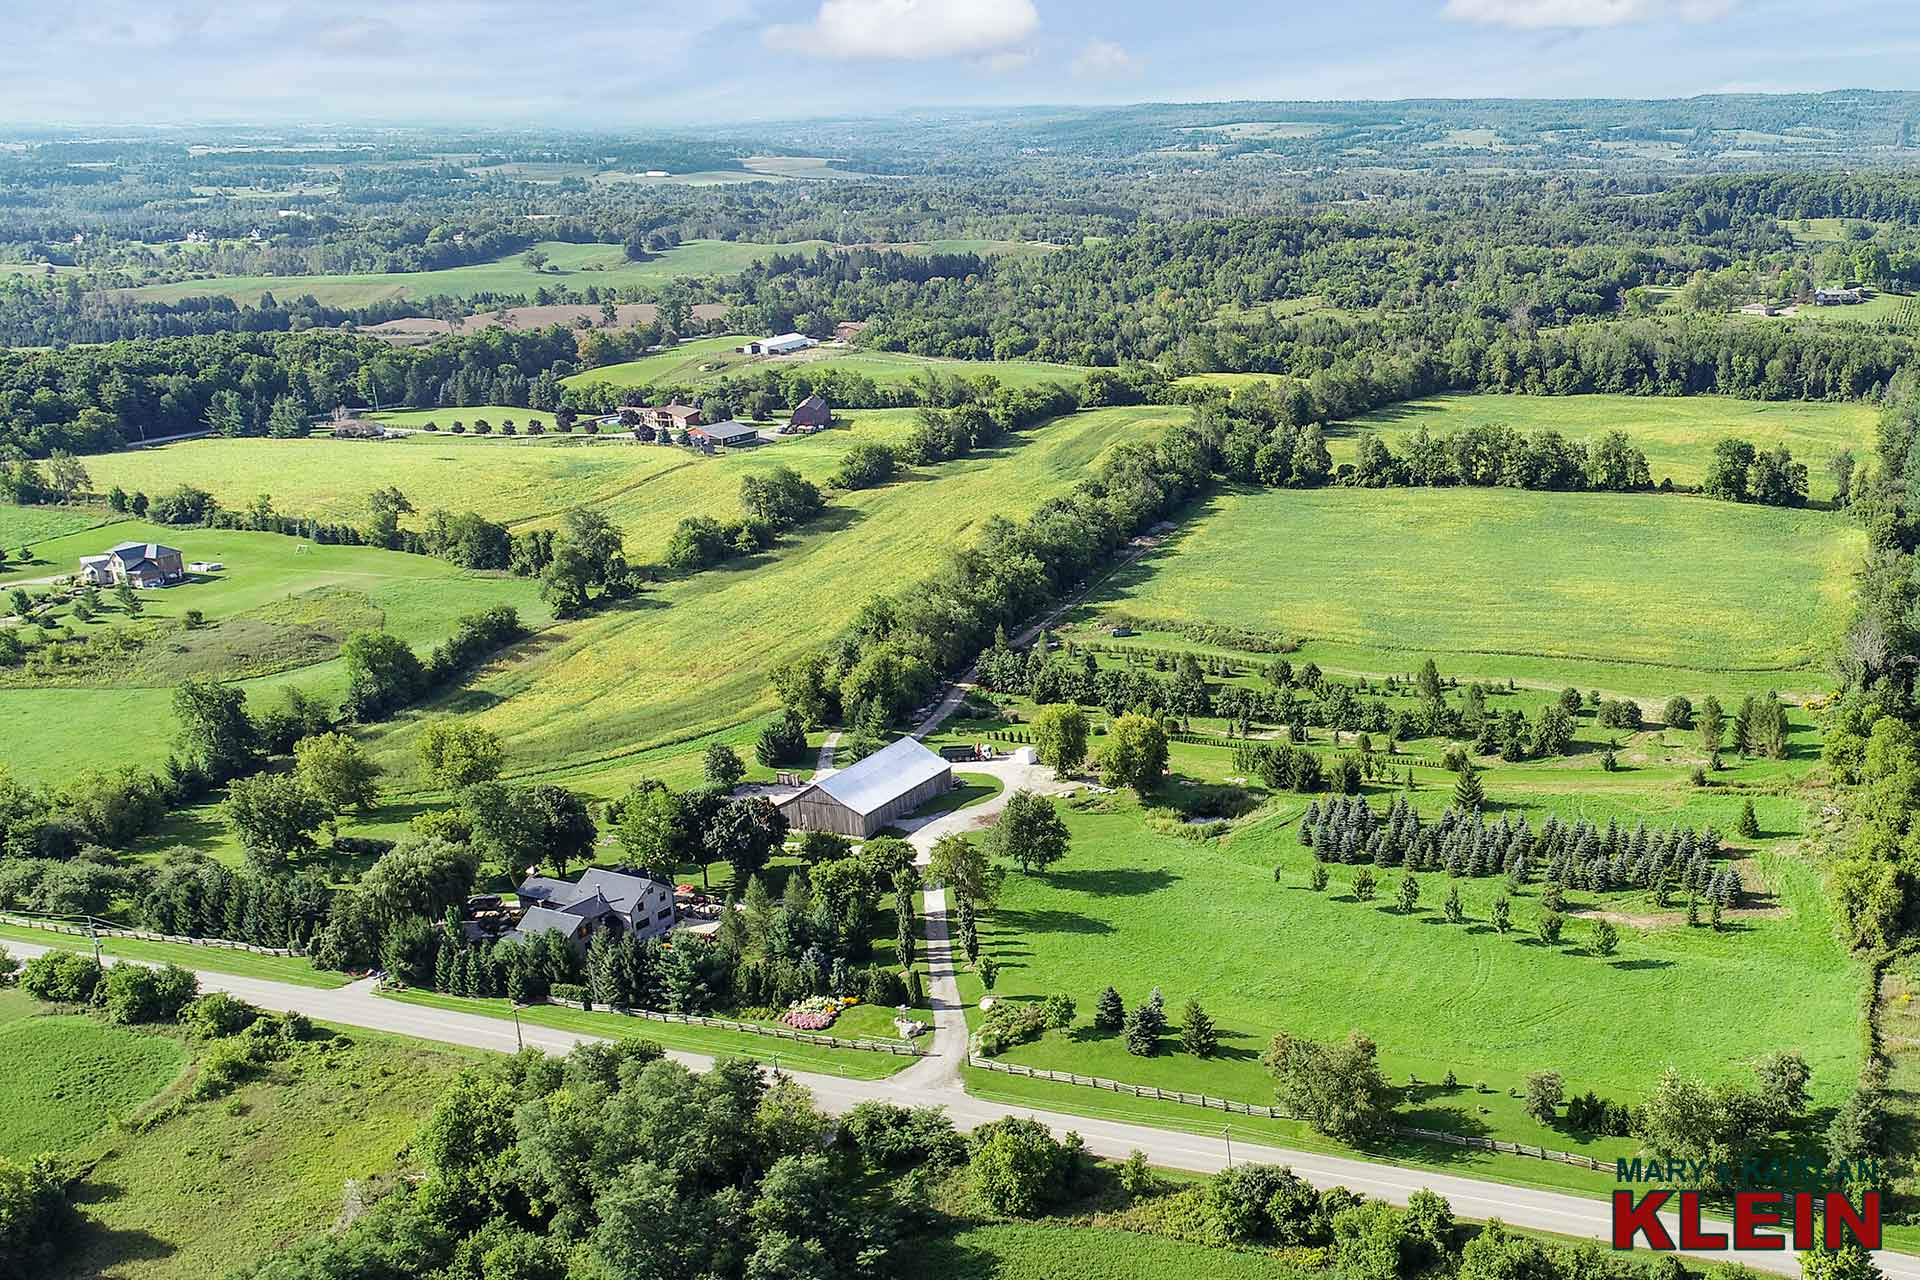 27 Acres, home for sale, Caledon, Ontario, North of Toronto, Character